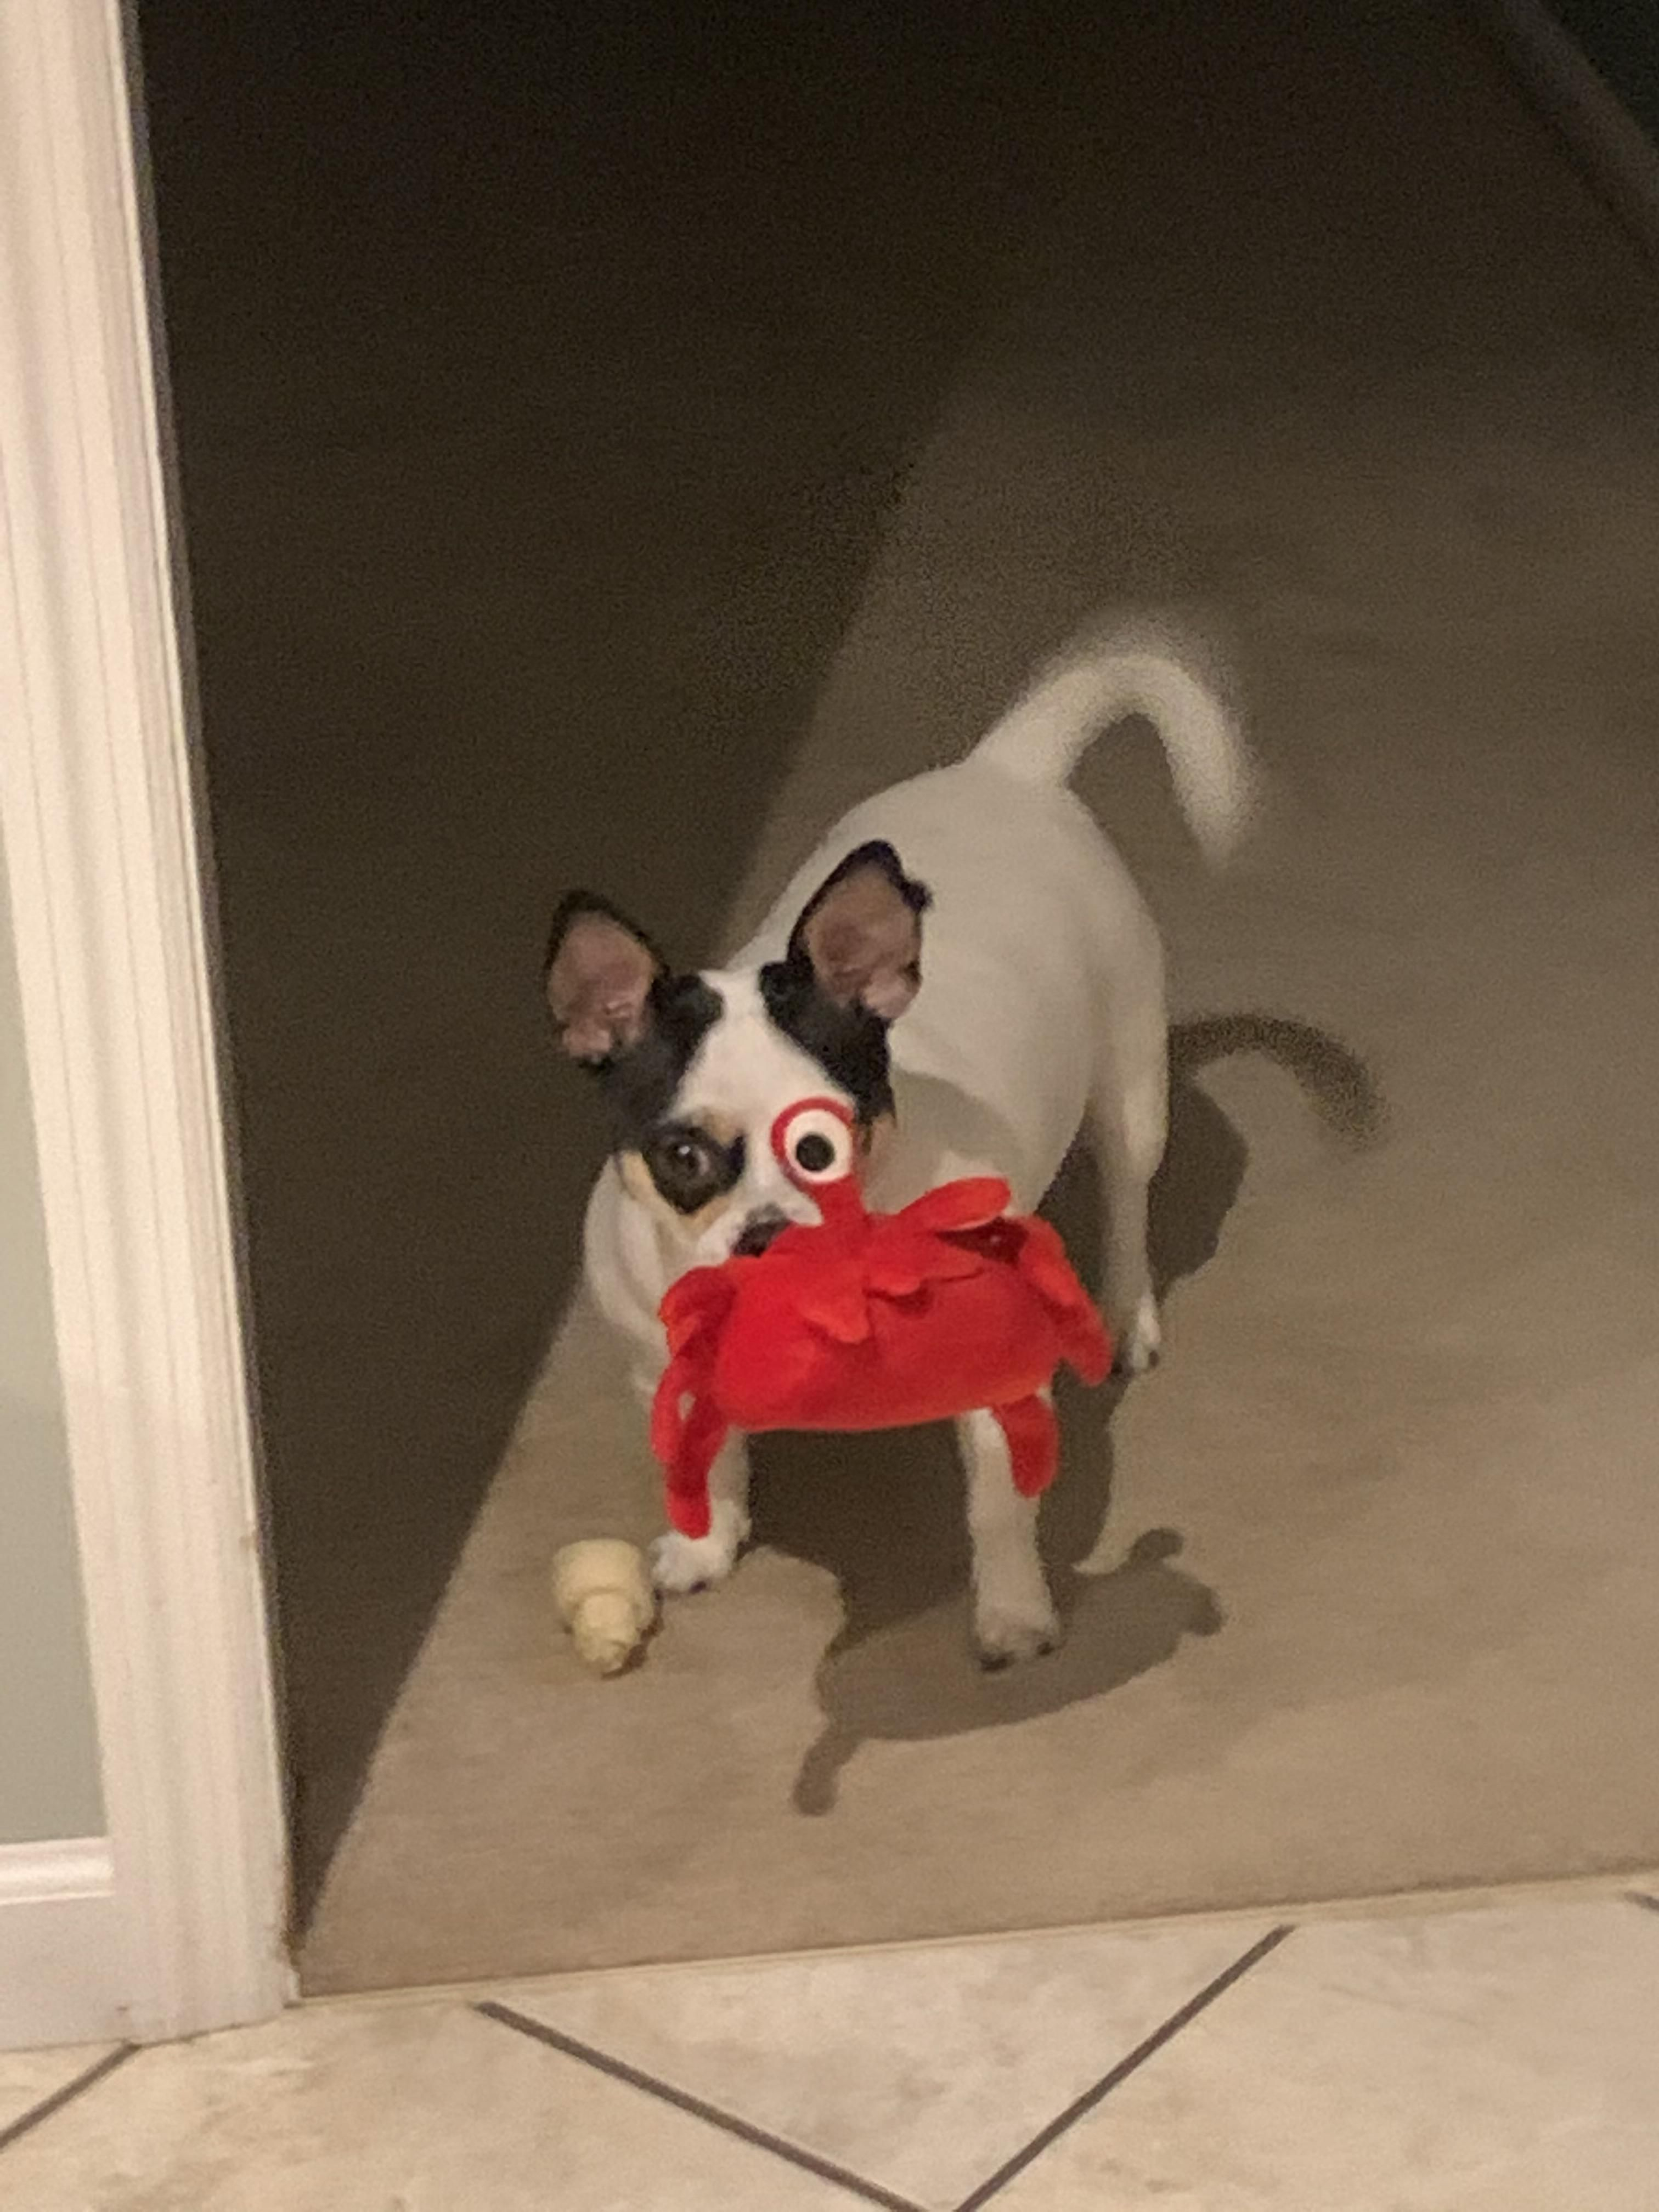 My dog picked up his toy just right